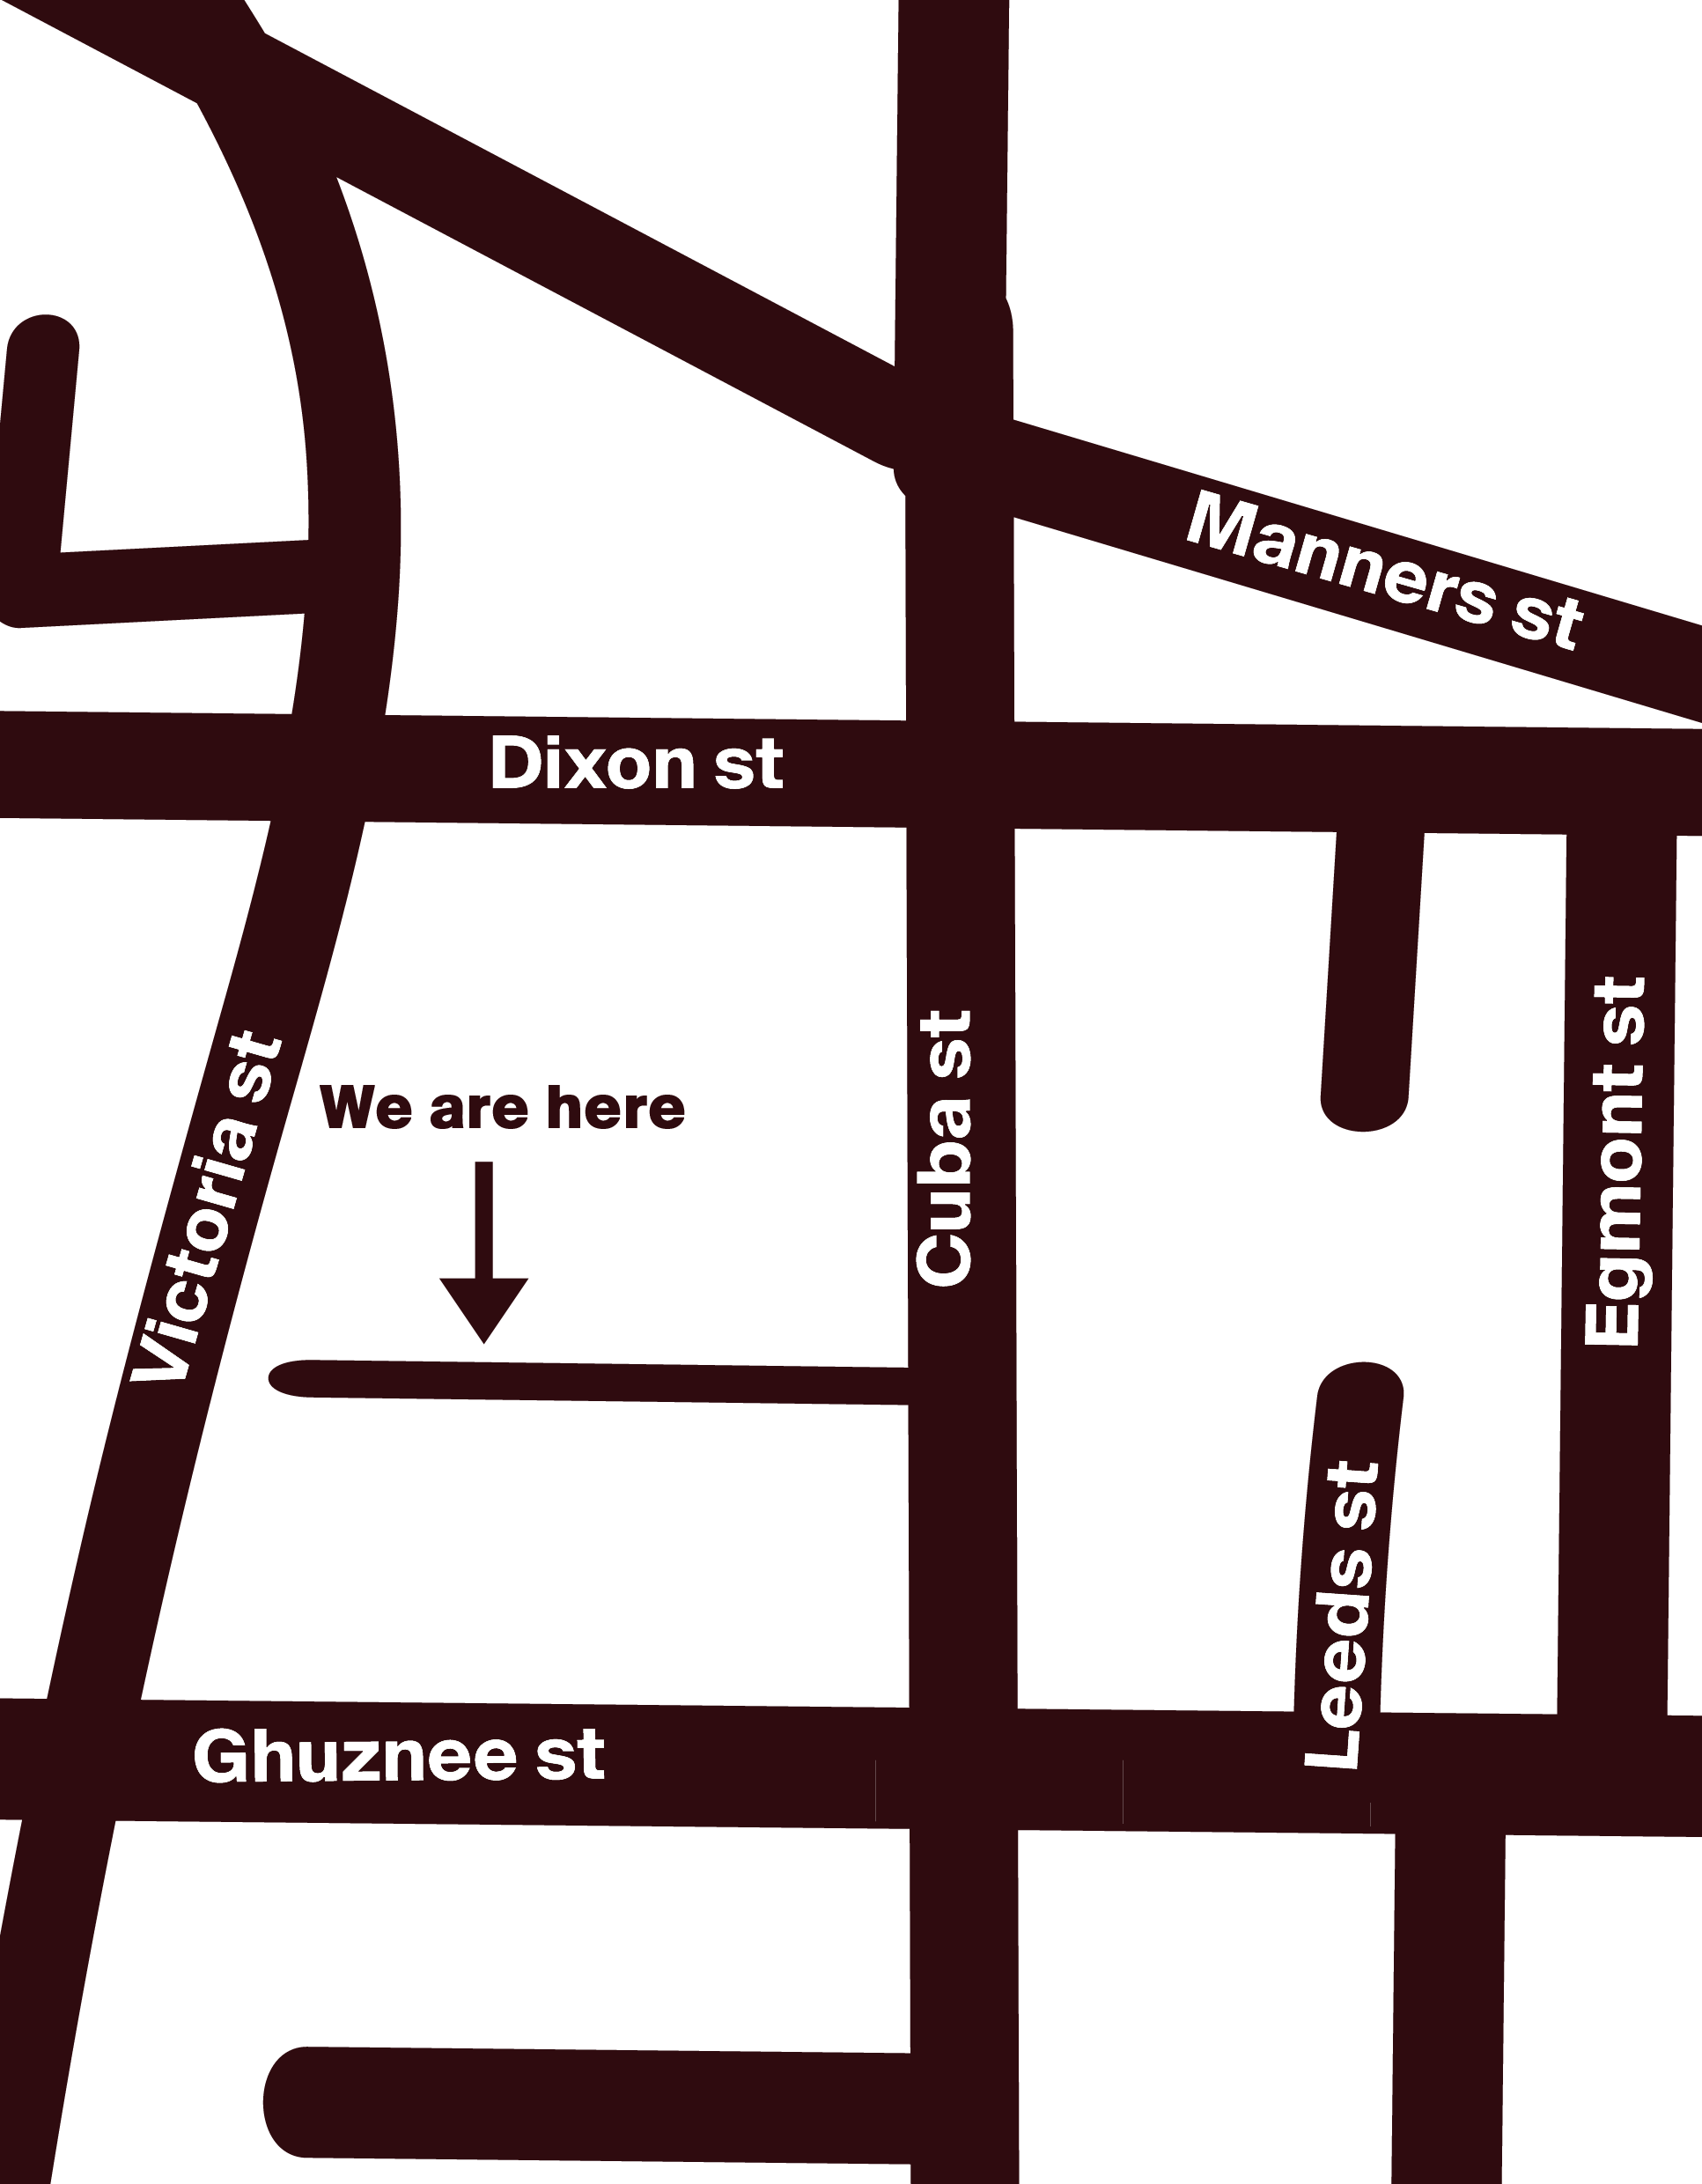 Map of Te Aro showing Enjoy's location